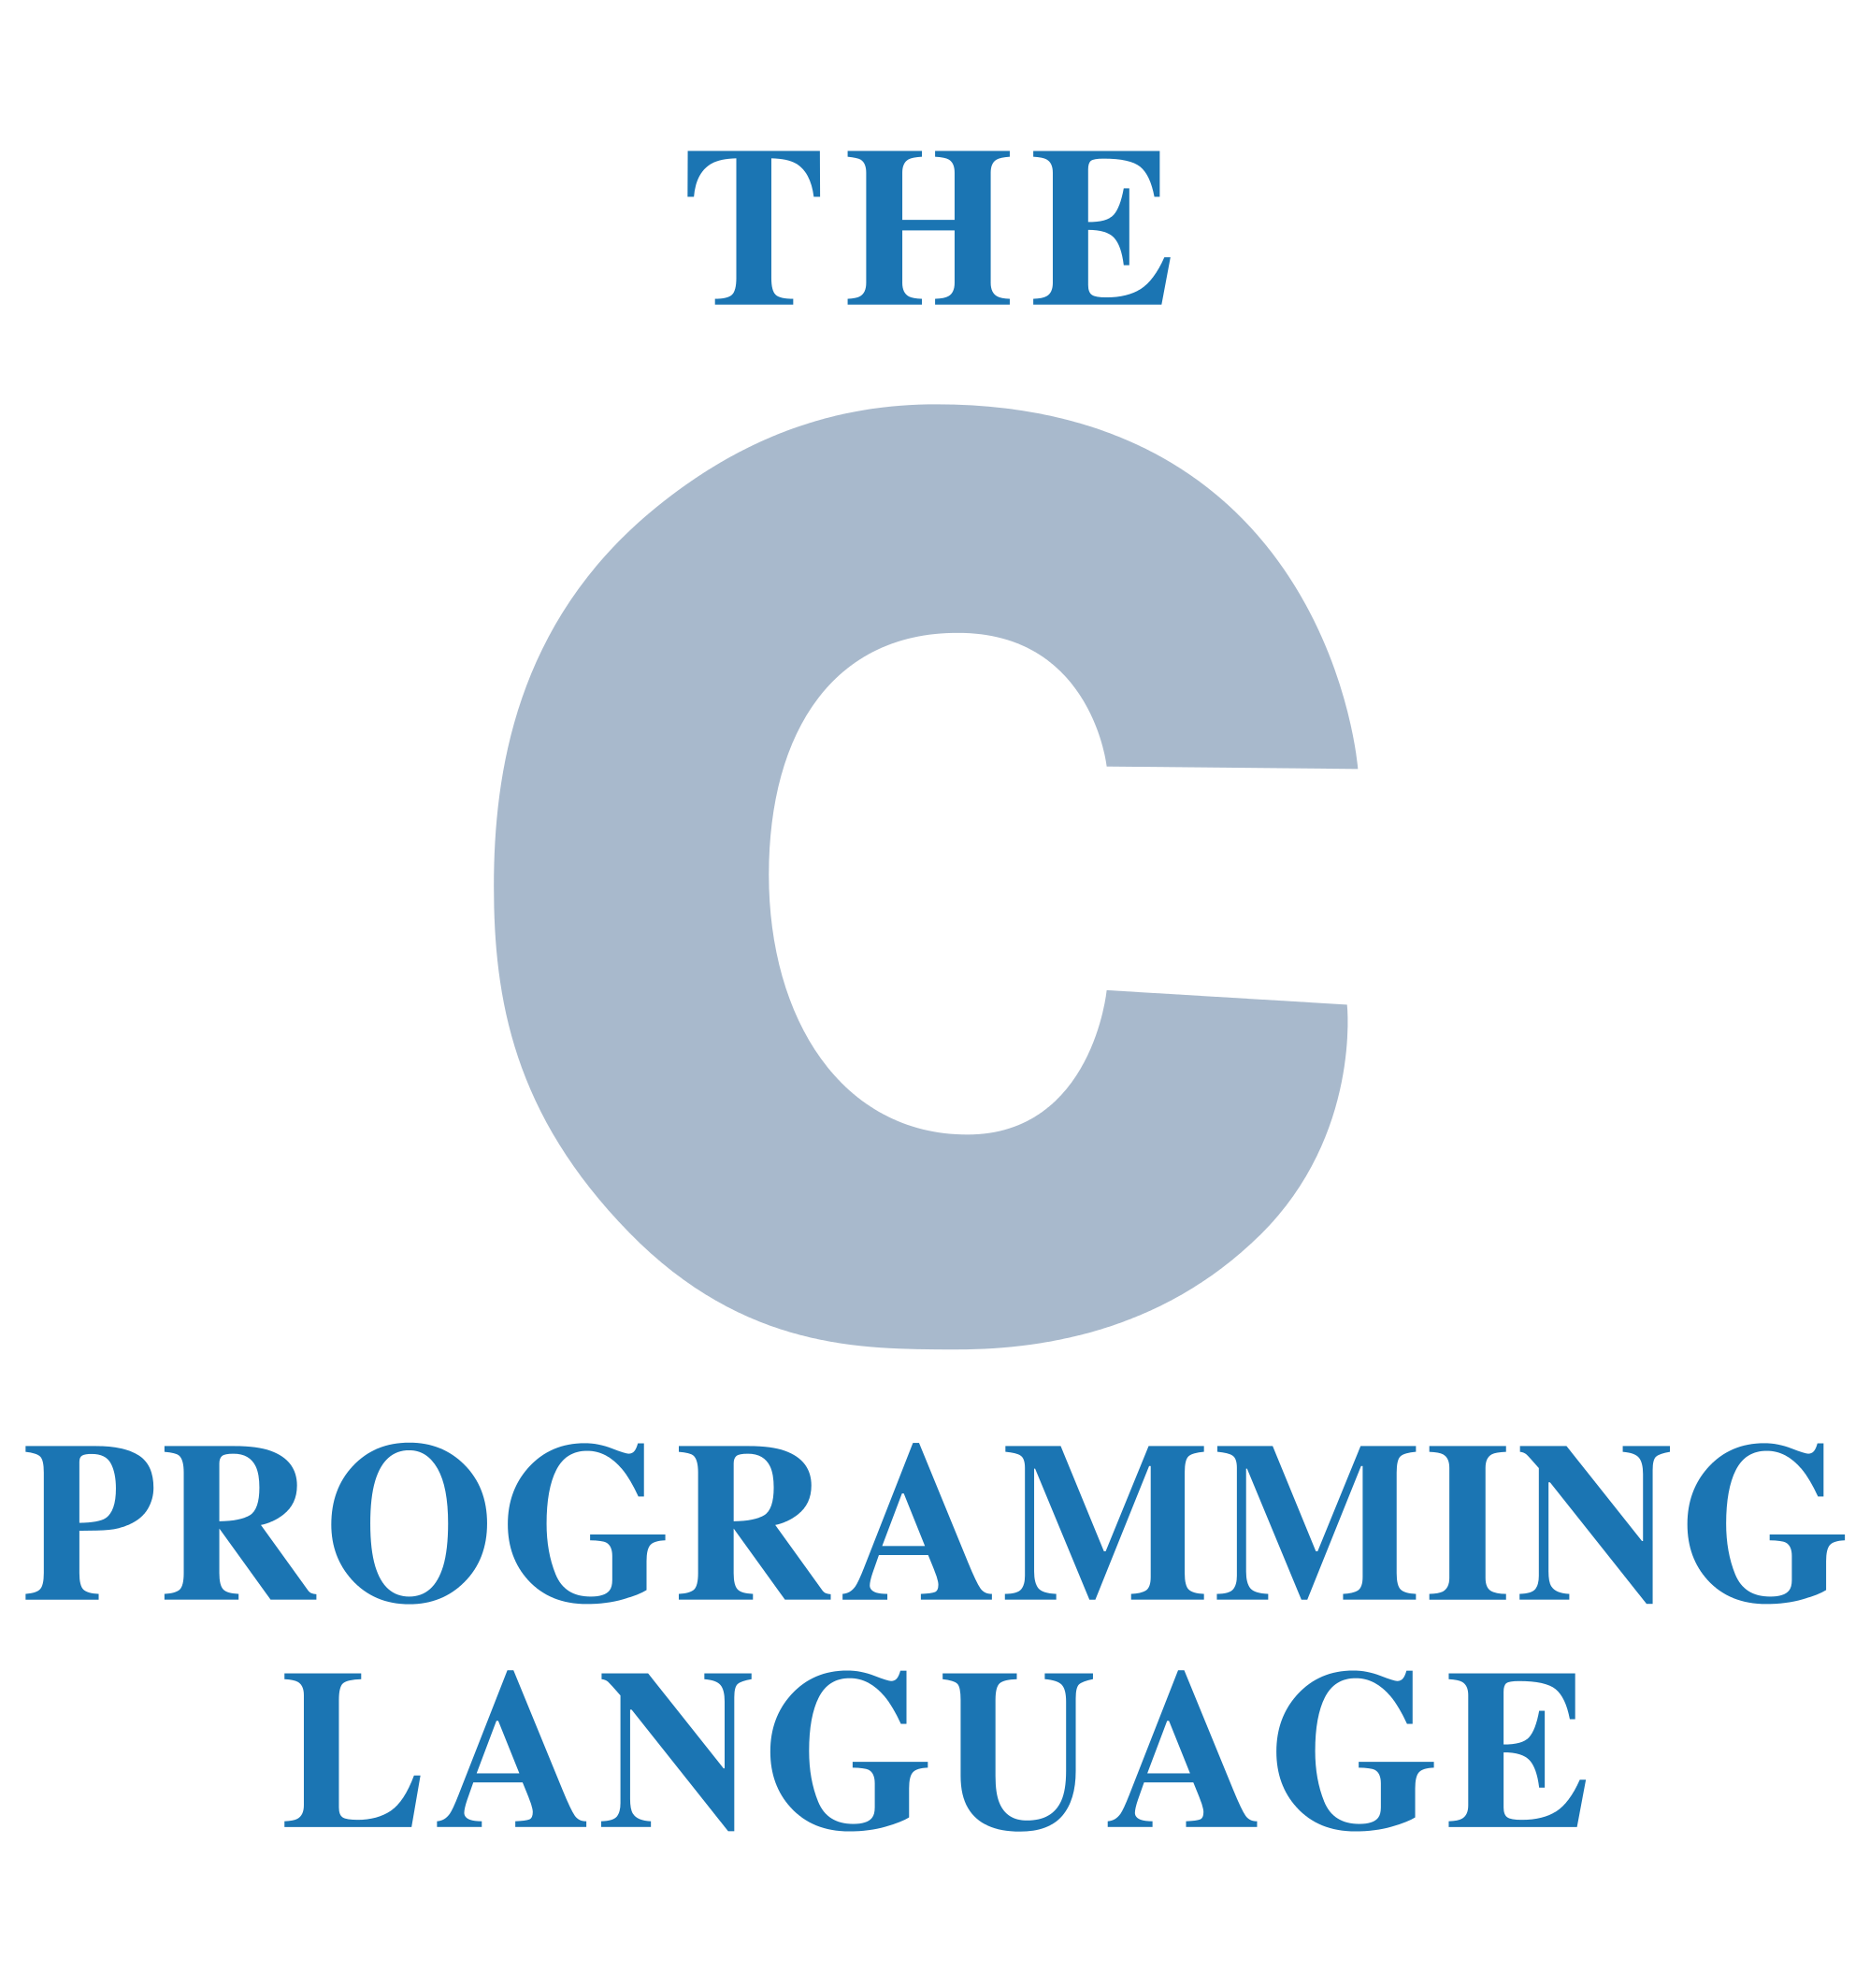 the_c_programming_language_logo_svg.png